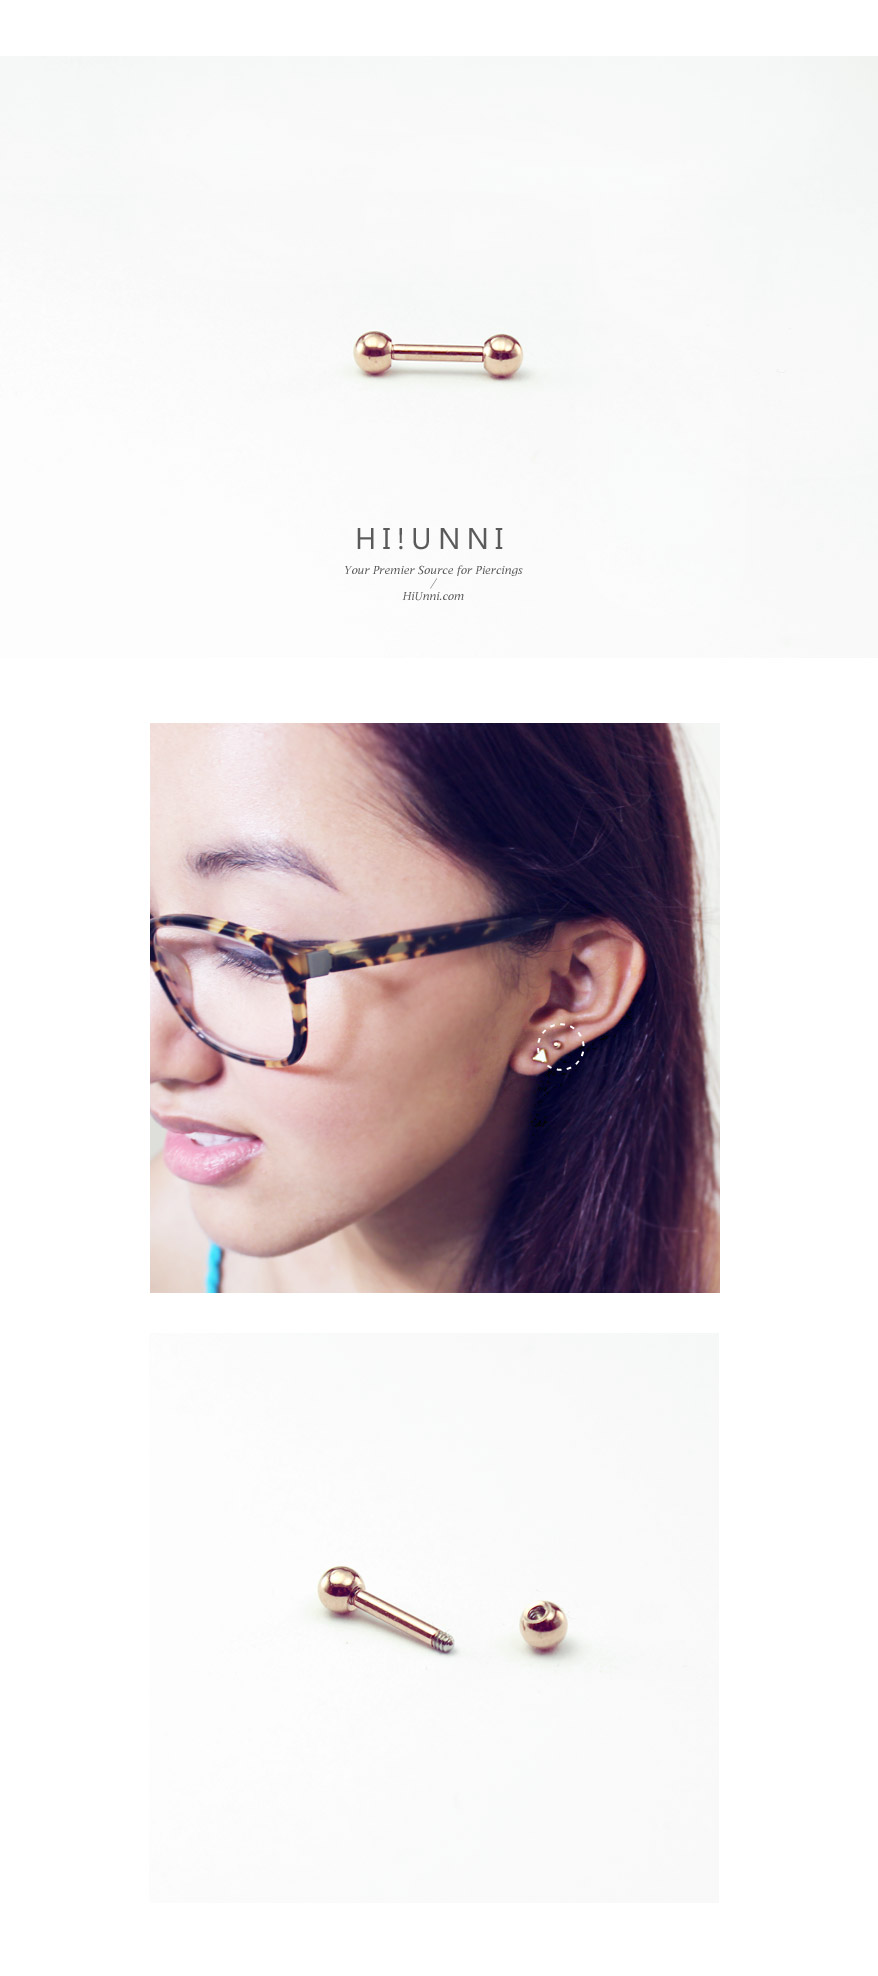 ear_studs_piercing_Cartilage_16g_316l_Stainless_Steel_earring_tragus_korean_asian_style_barbell_3mm_4